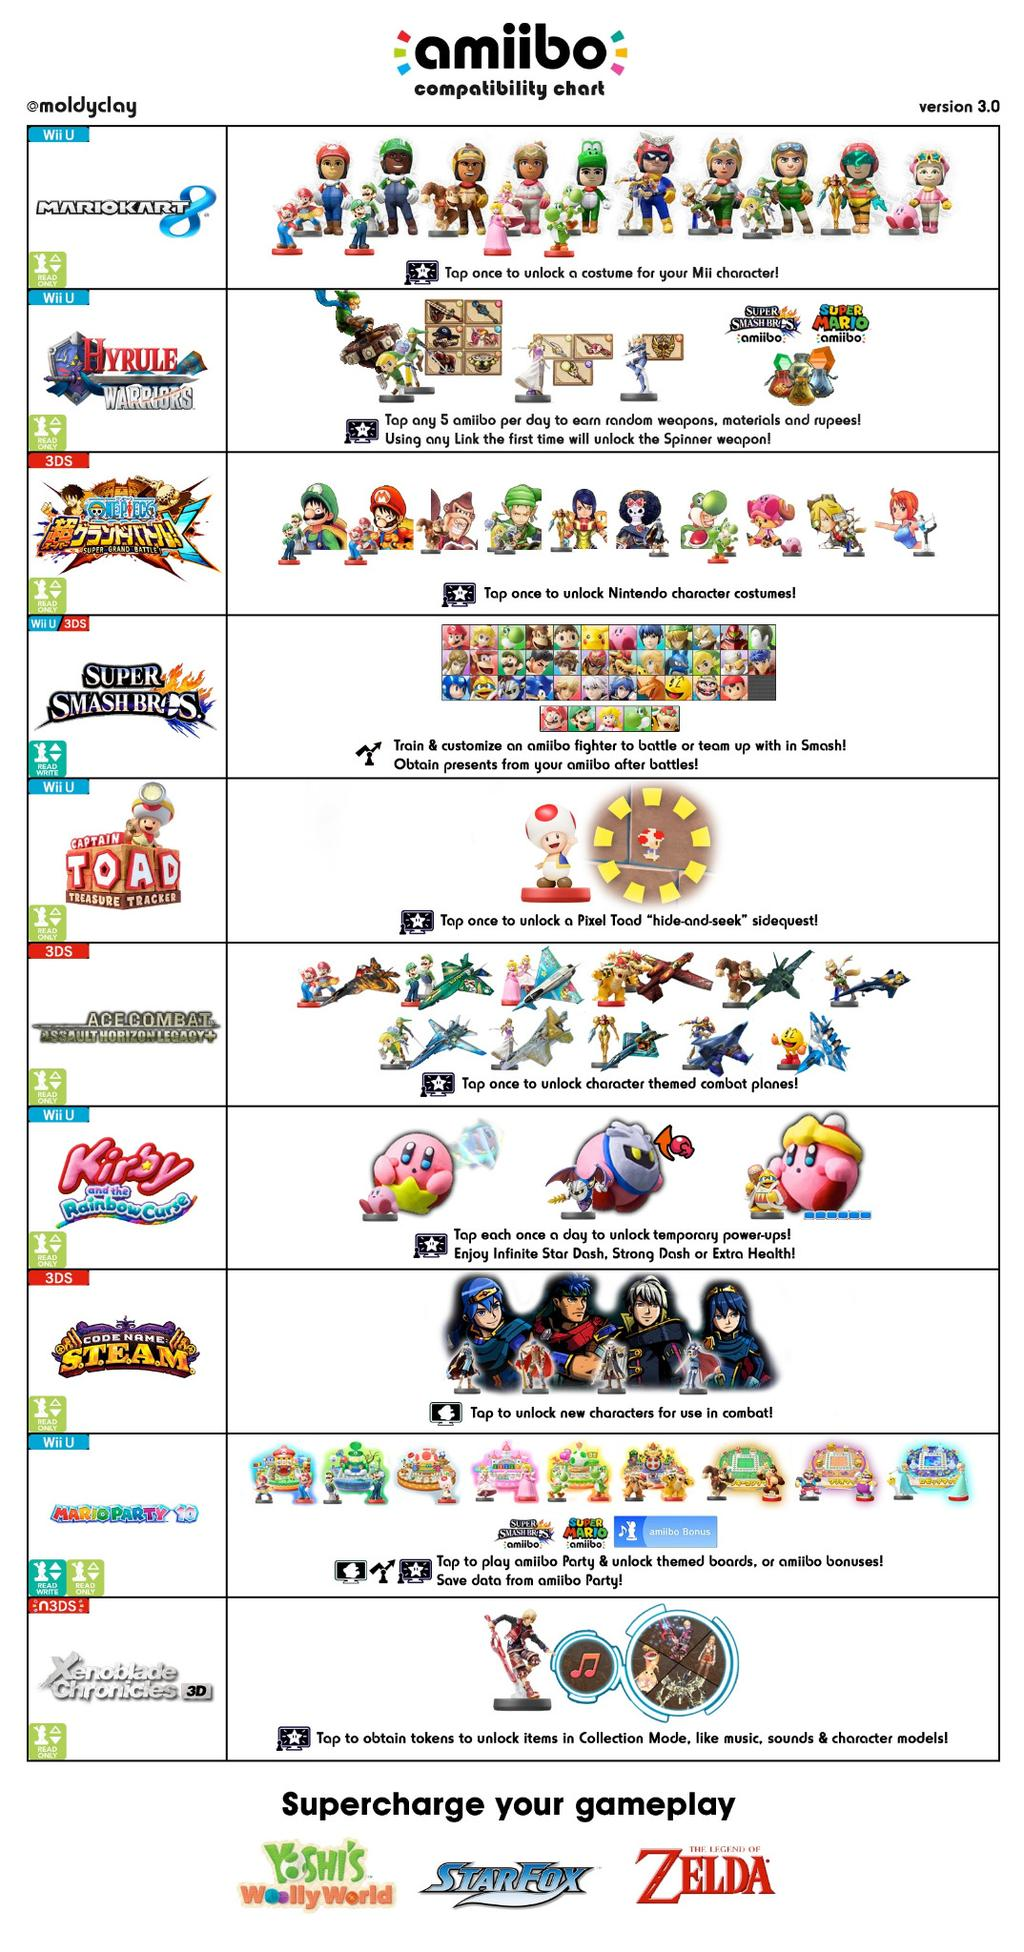 3ds compatibility chart